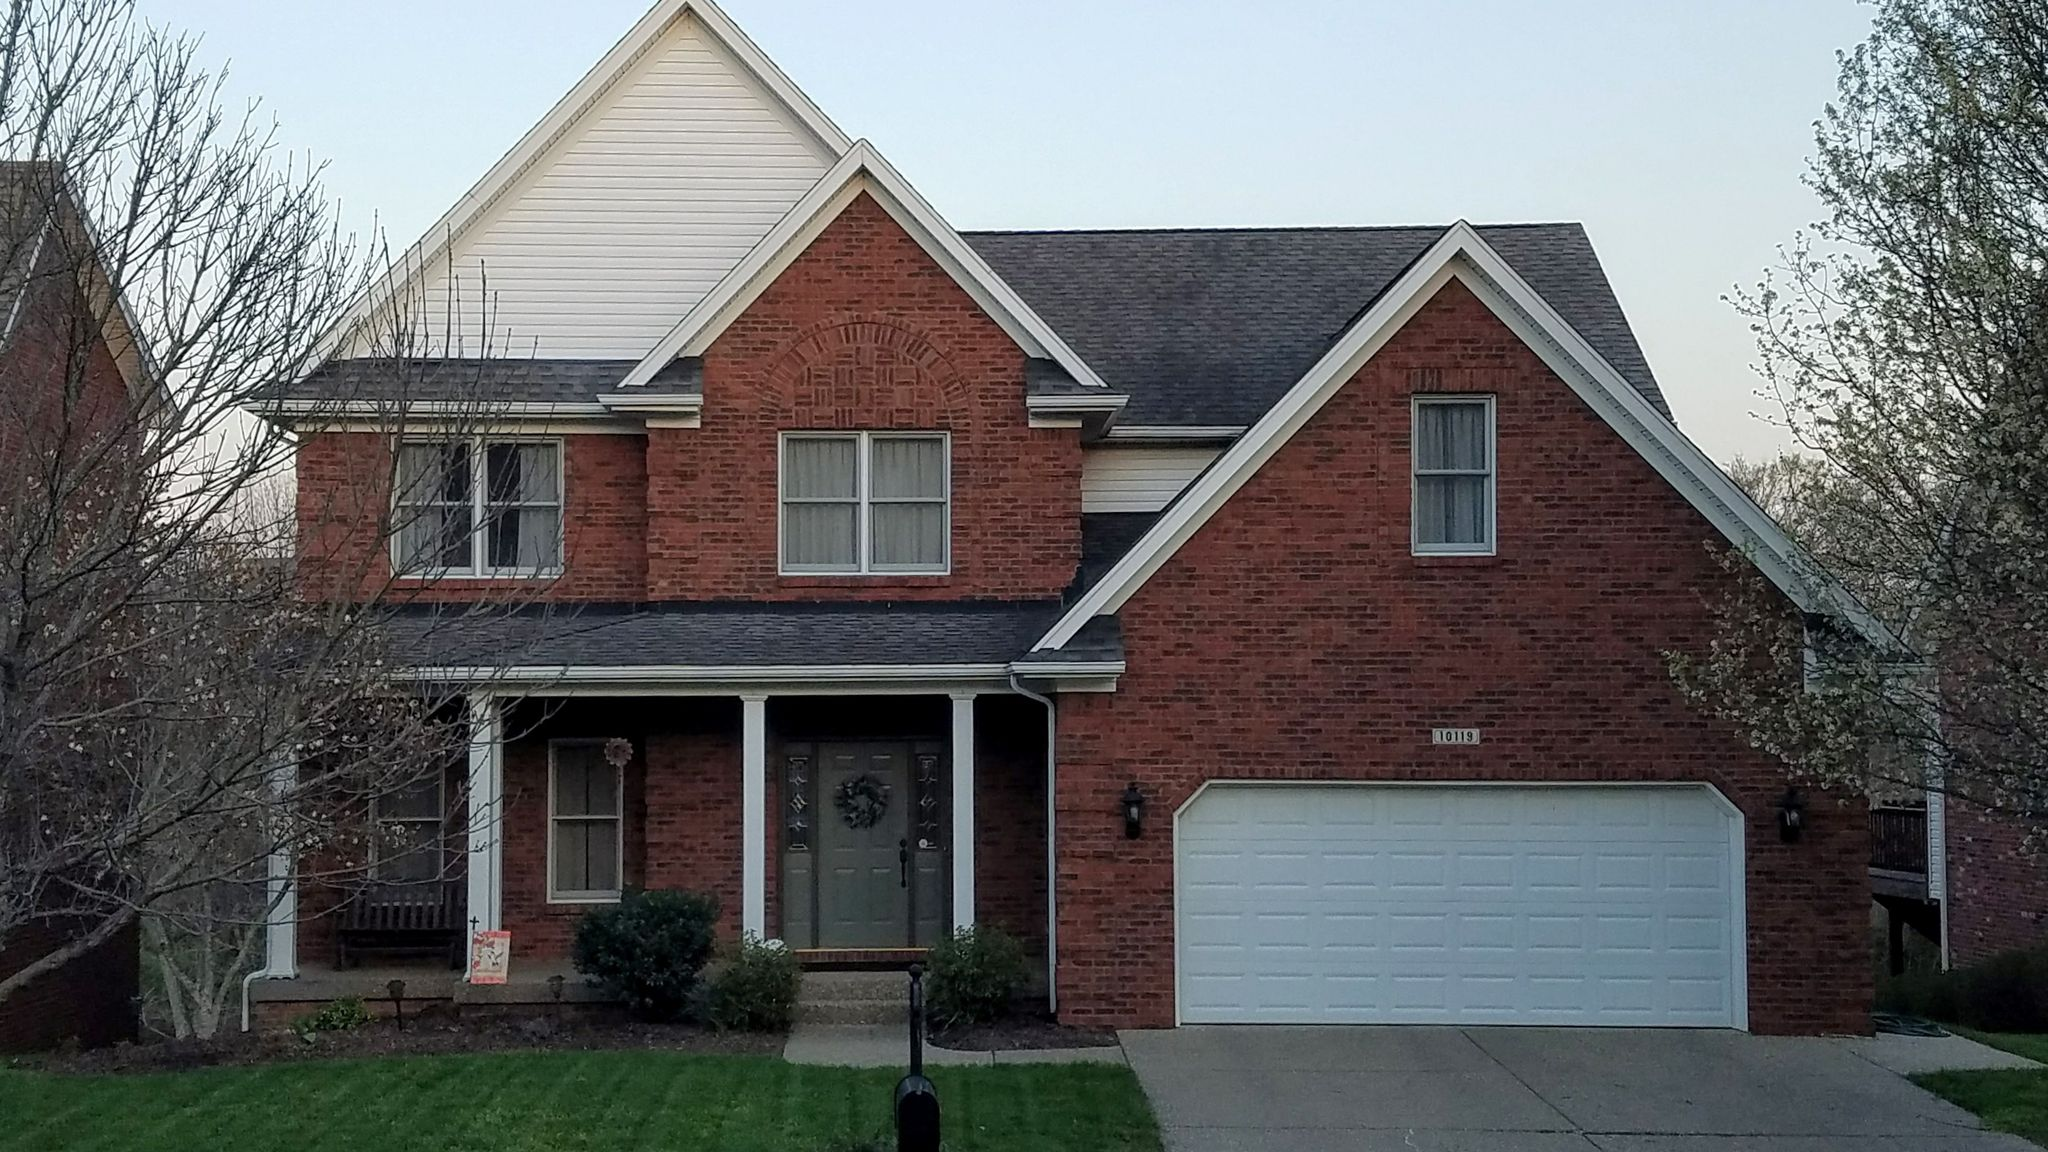 Here is the Brand New Picture Of Patio Homes for Sale In Springhurst Louisville Ky